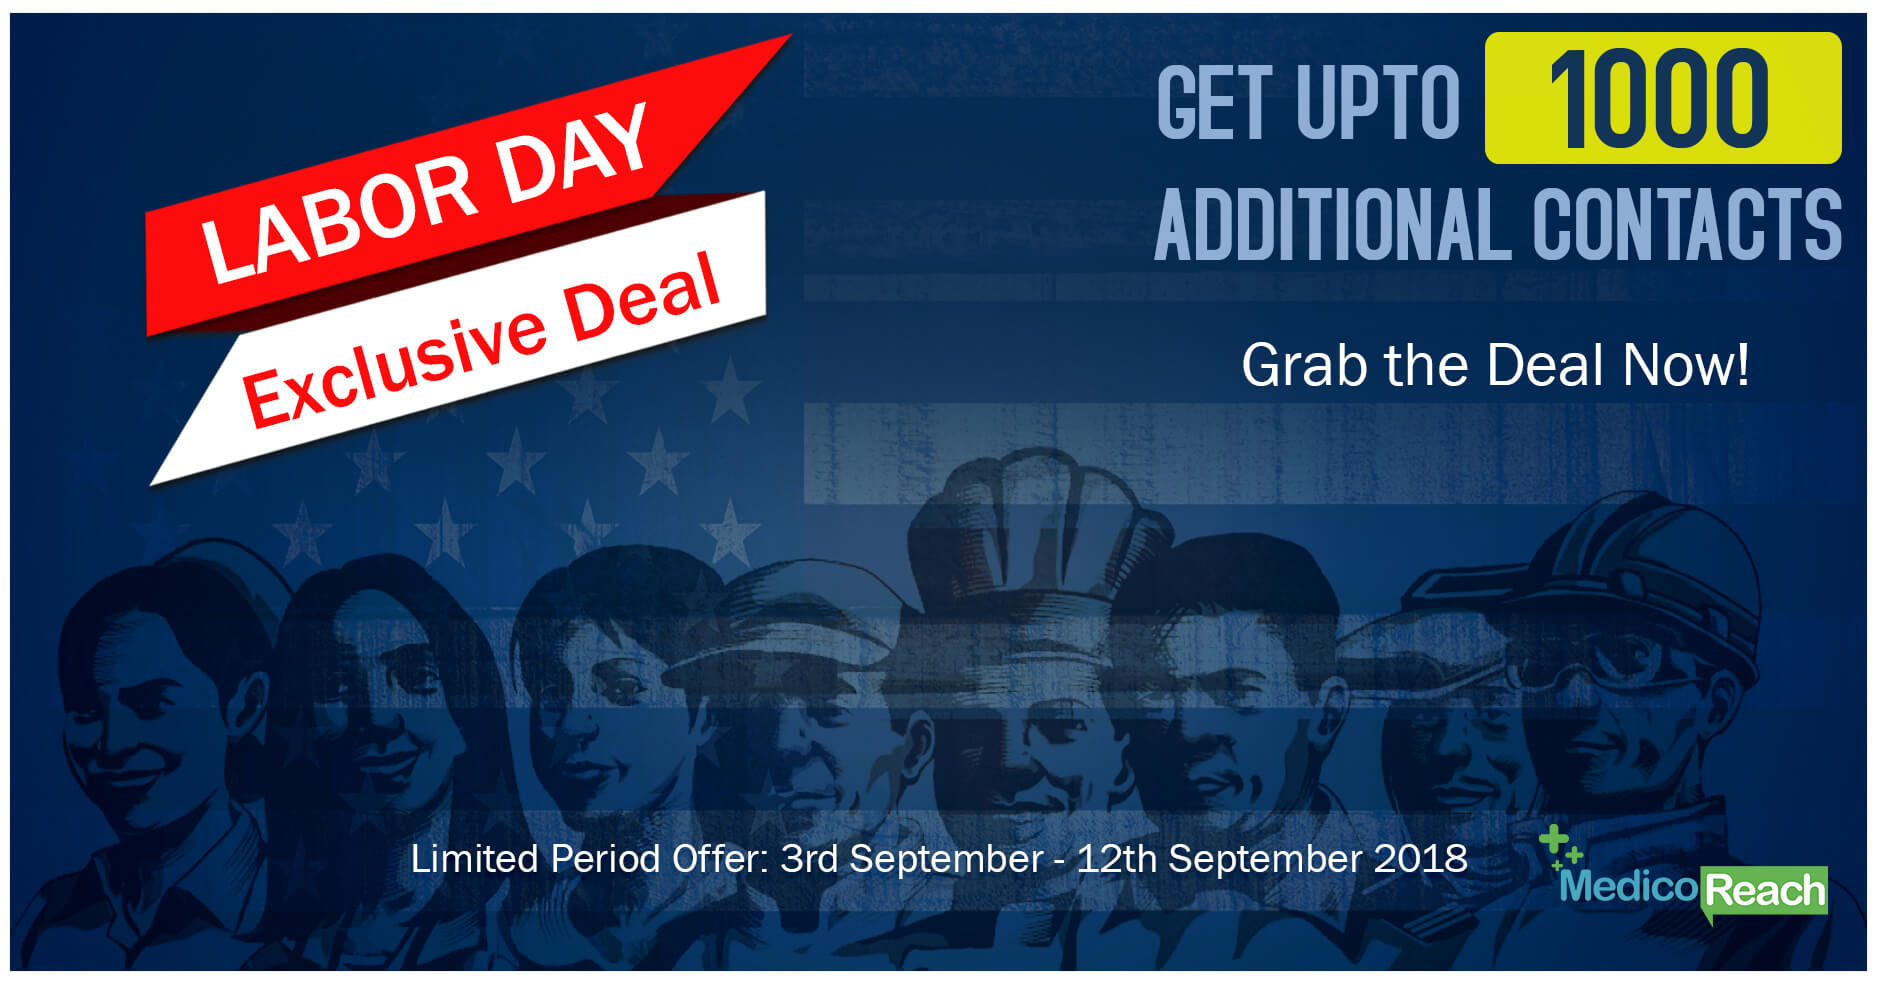 Labor Day Offer: MedicoReach Offers Up to 1000 Additional Contacts on Healthcare List Purchase